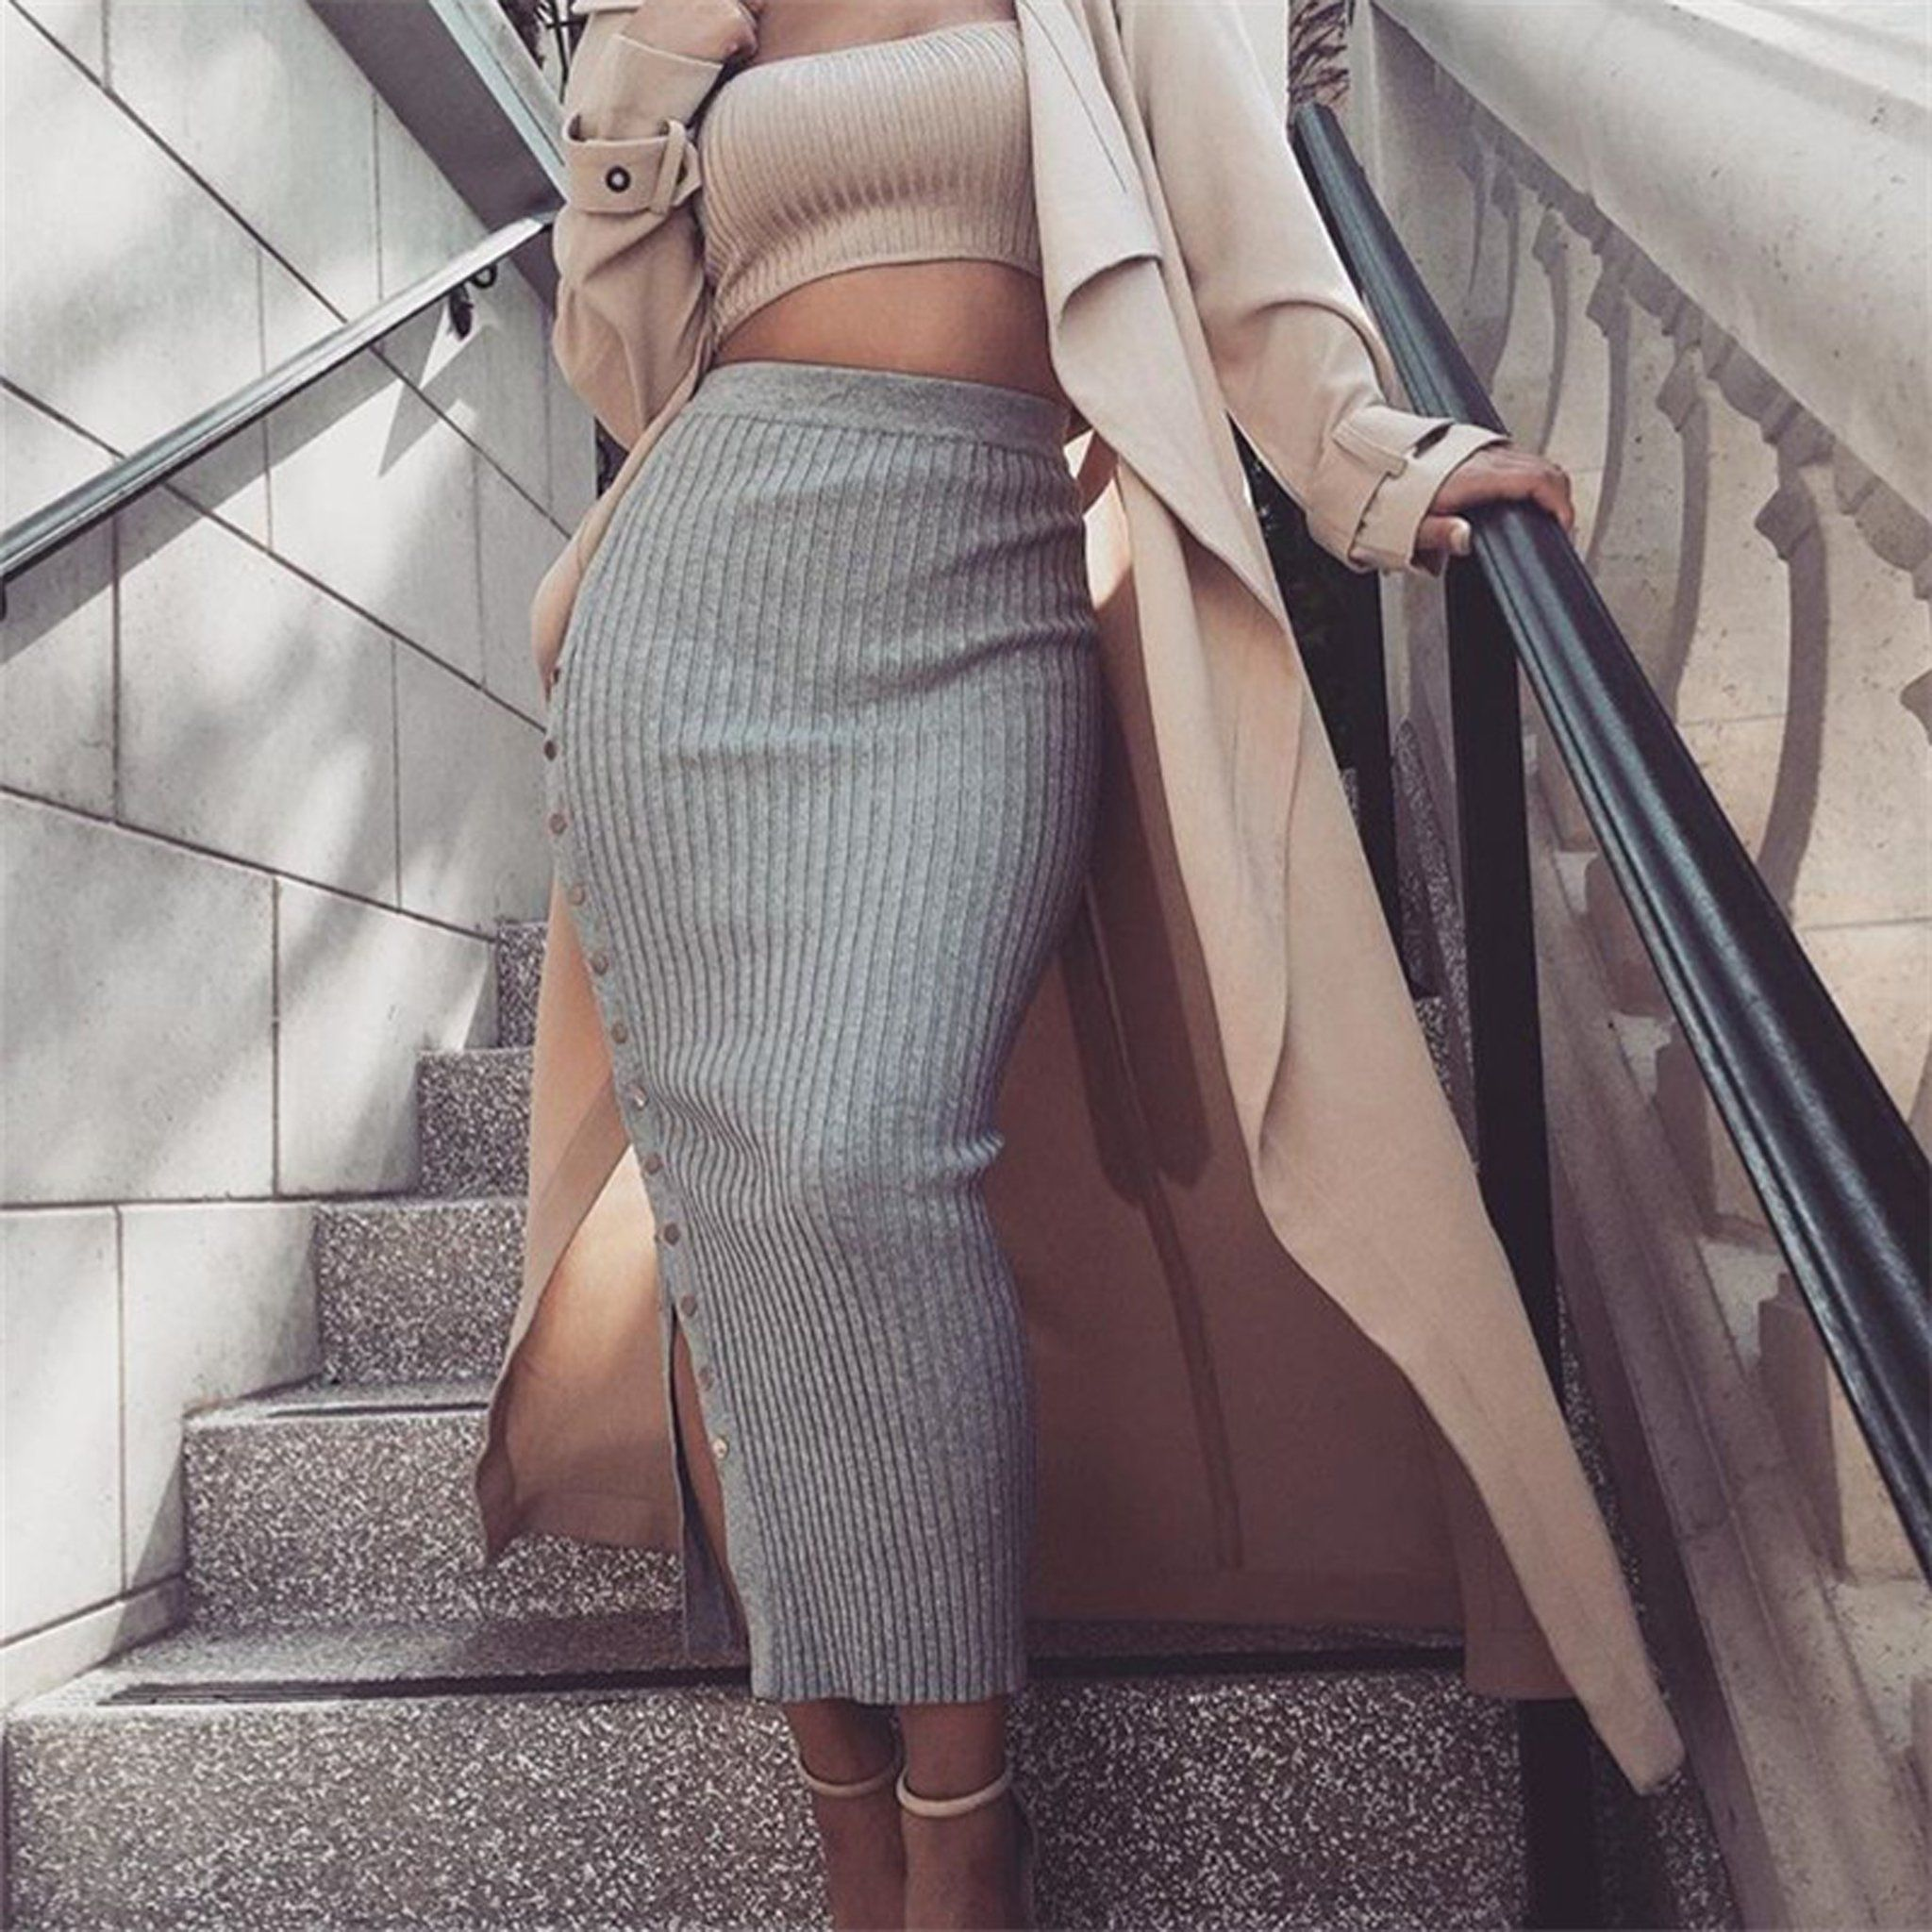 744fbef1f8 Classy Baddie Outfit Ideas for Going Out - Elegant Party Club Summer  Fashion - Knit Ribbed Button Up Side Long Tight Fitted Maxi Skirt - ideas  elegantes del ...